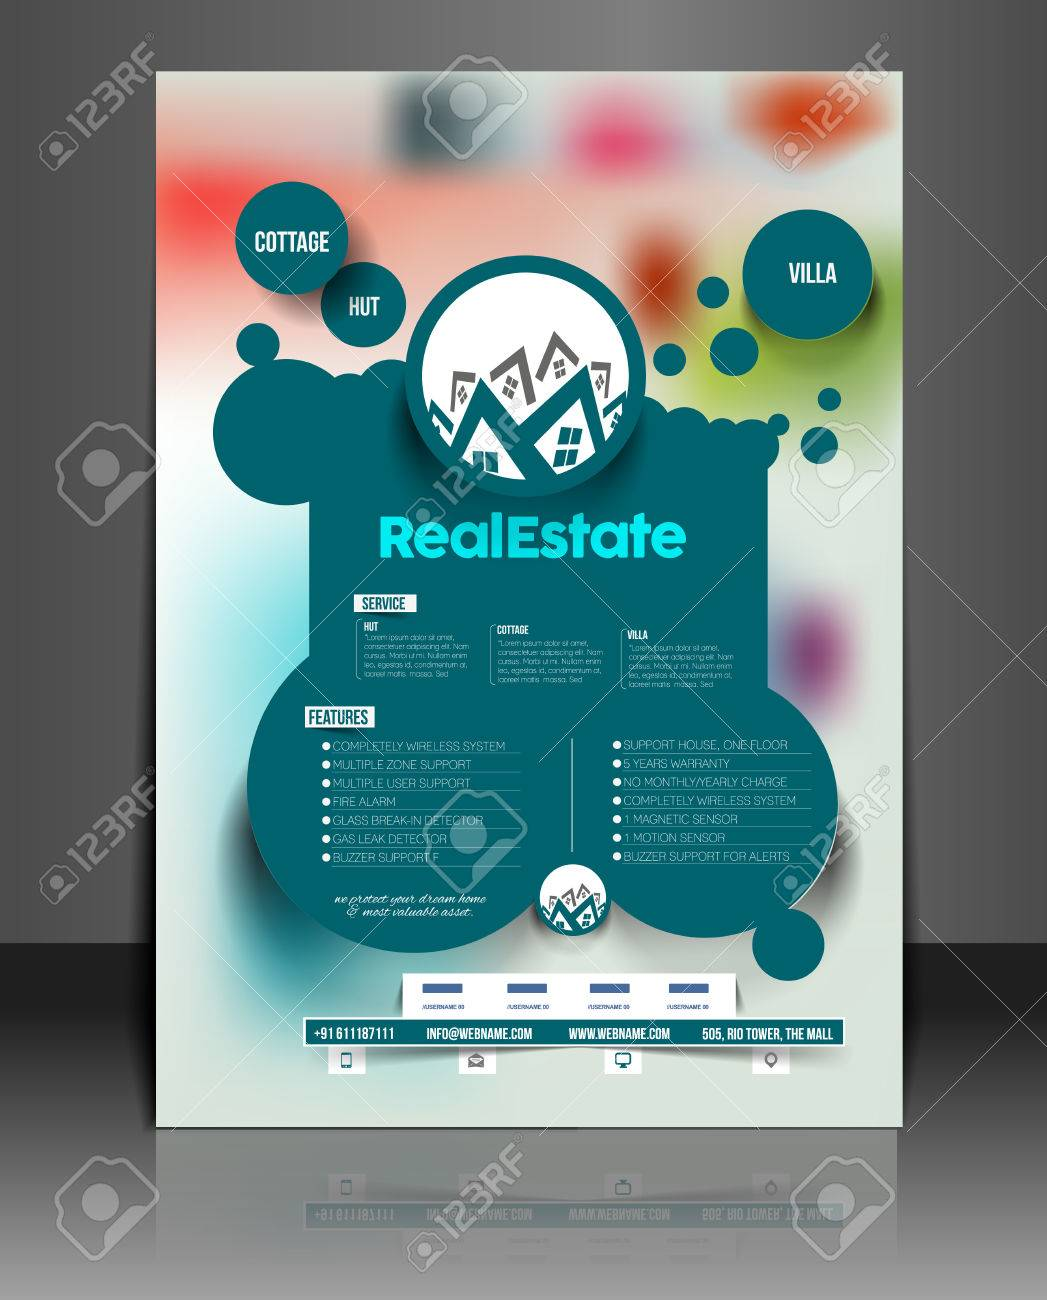 real estate agent flyer poster template royalty cliparts real estate agent flyer poster template stock vector 41833452